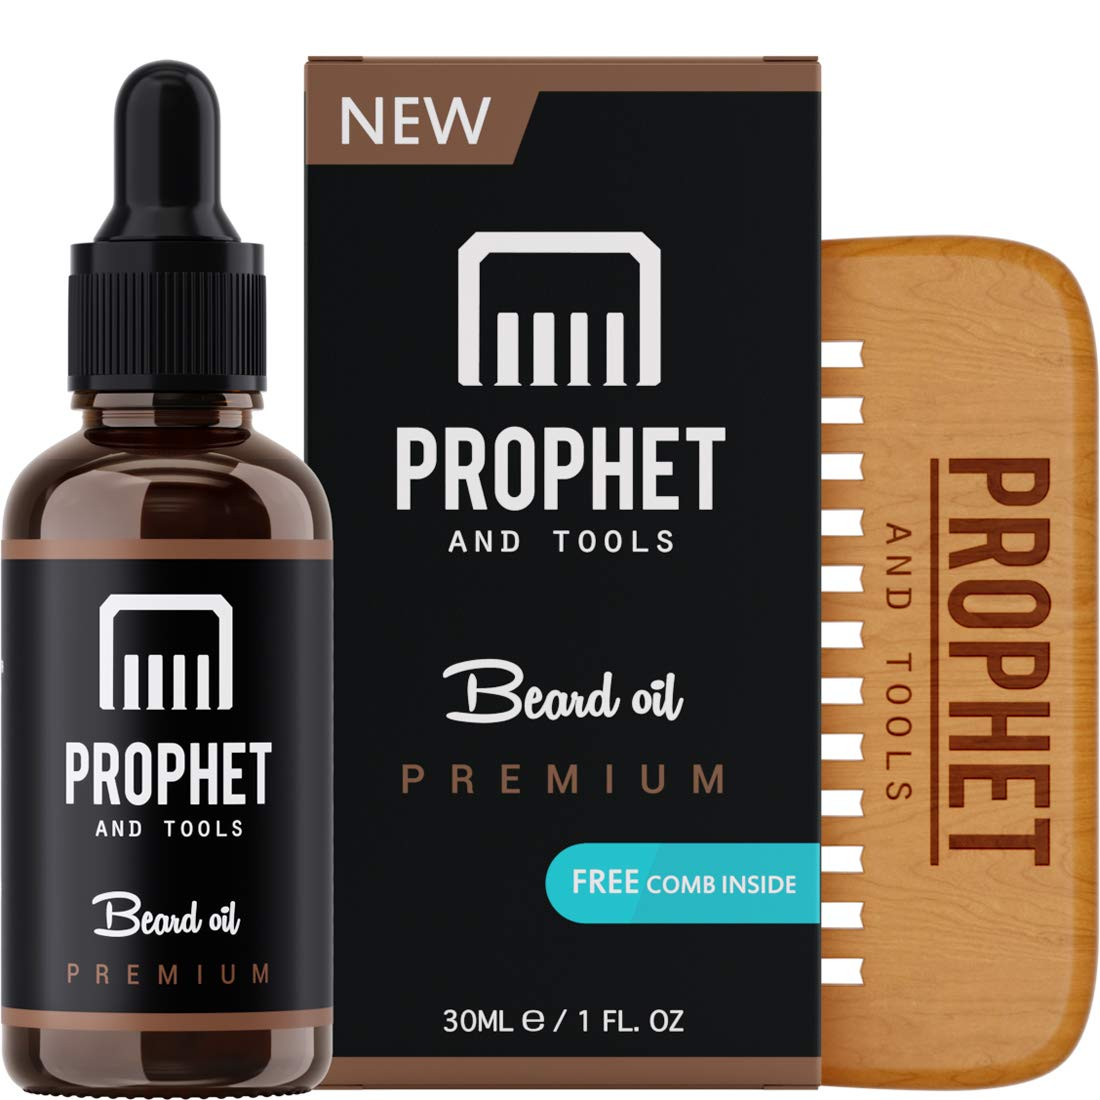 PREMIUM Unscented Beard Oil and Comb Kit for Thicker Facial Hair Grooming - The All-In-One Conditioner and Shampoo-like Softener, Shine and Fuller Beards & Mustache Growth Formula - NUTS-FREE & VEGAN For Men! Prophet and Tools product image